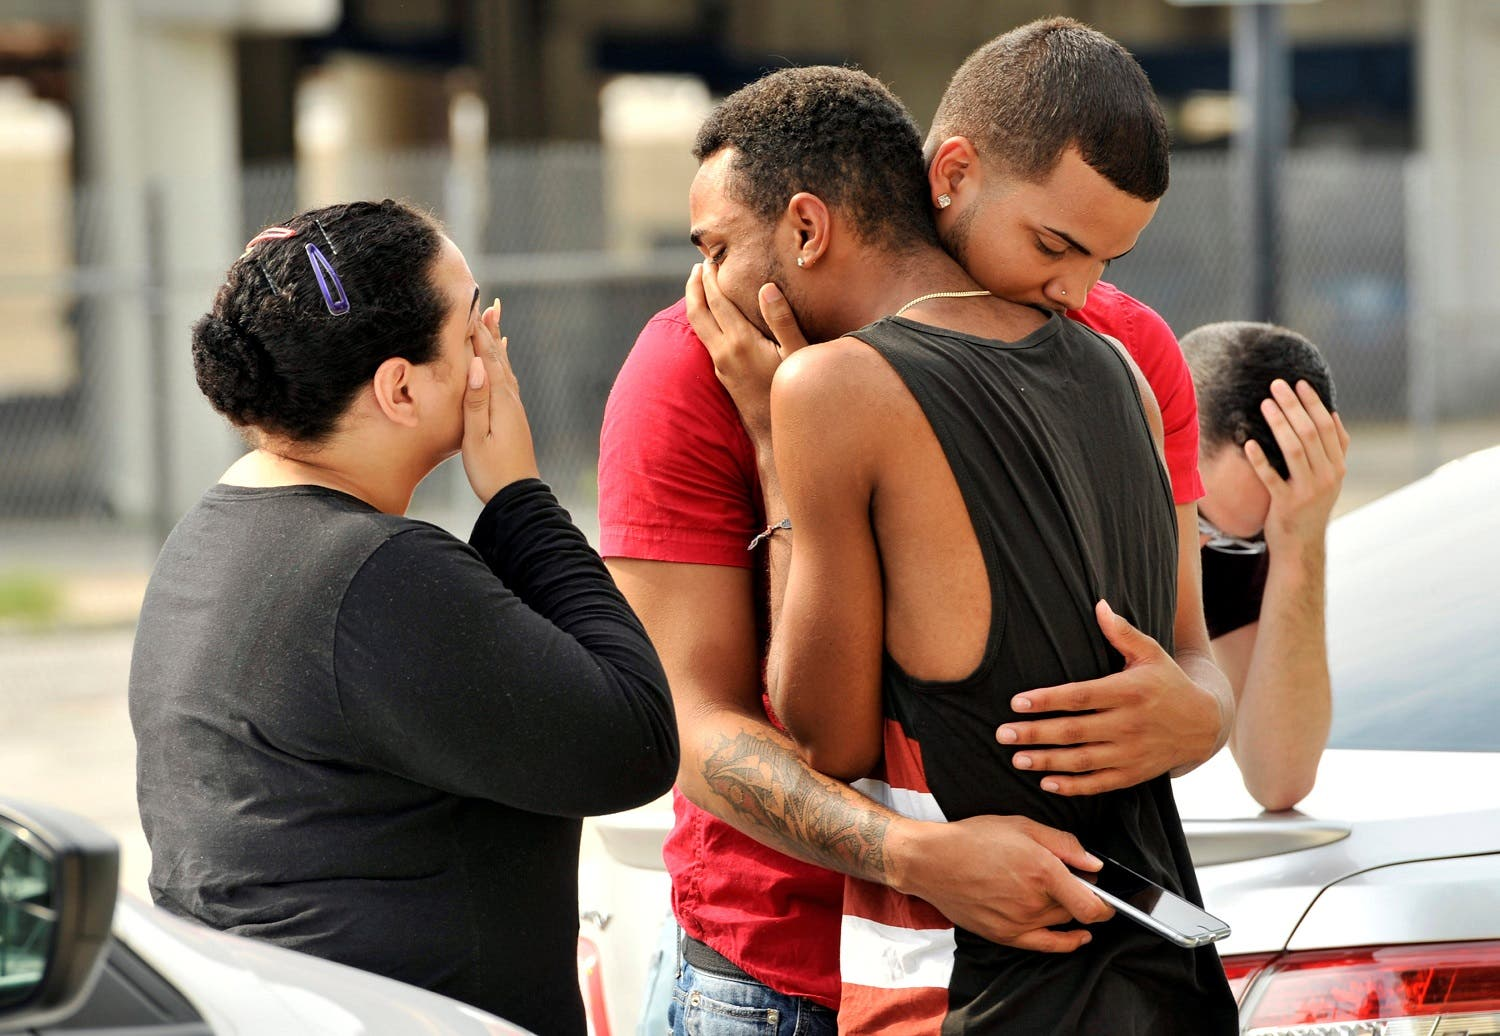 Friends and family members embrace outside the Orlando Police Headquarters during the investigation of a shooting at the Pulse night club (Photo: REUTERS)